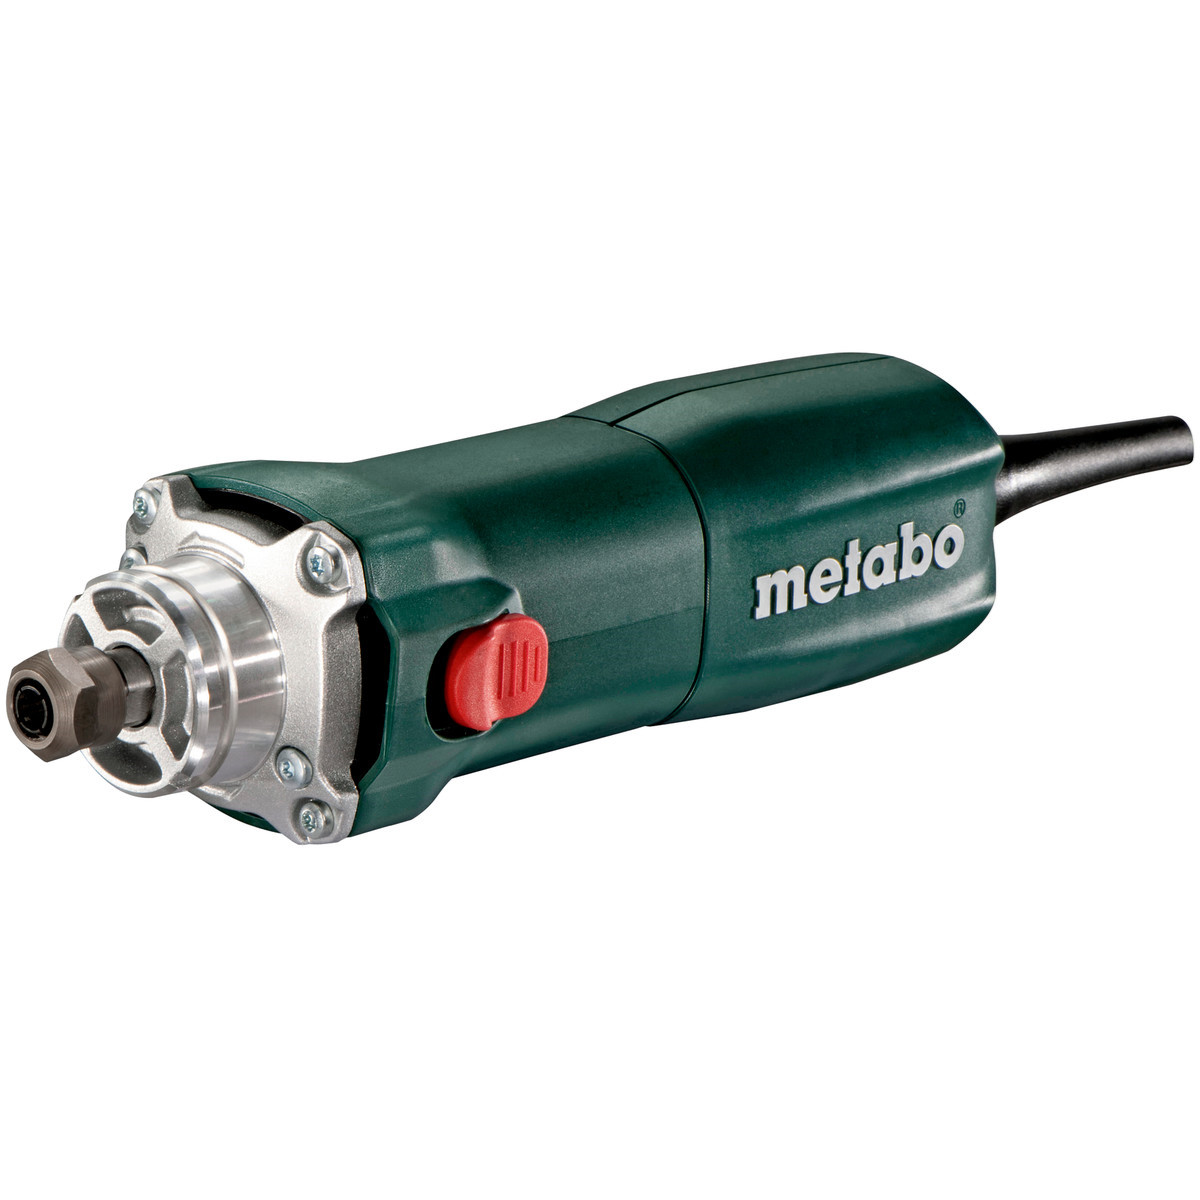 Metabo 600615000 Geradschleifer GE 710 Compact 710W